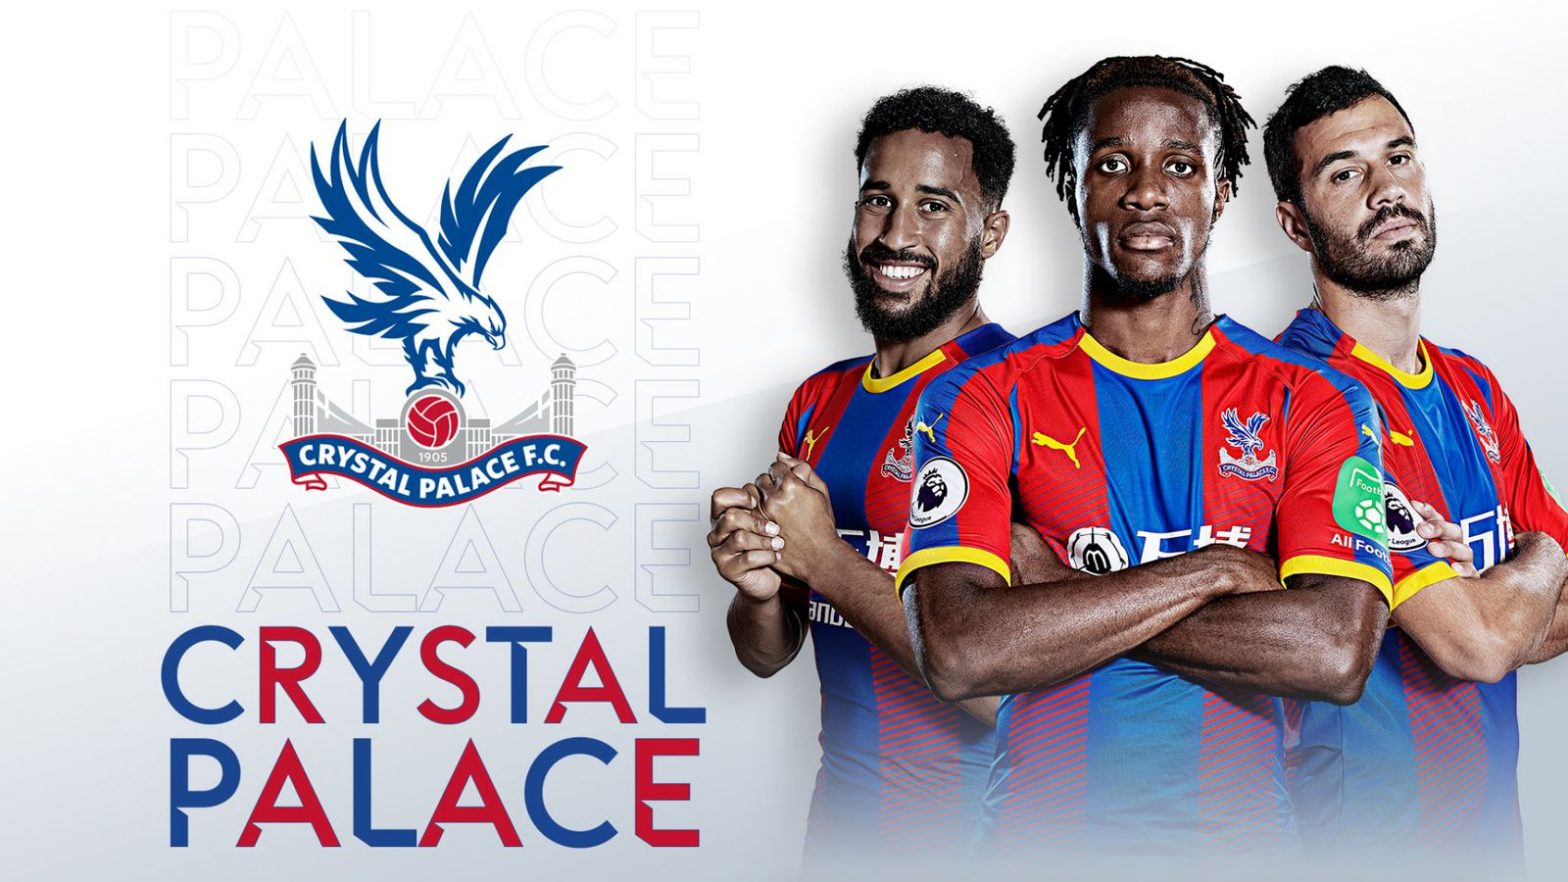 Crystal Palace fixtures 2019/20